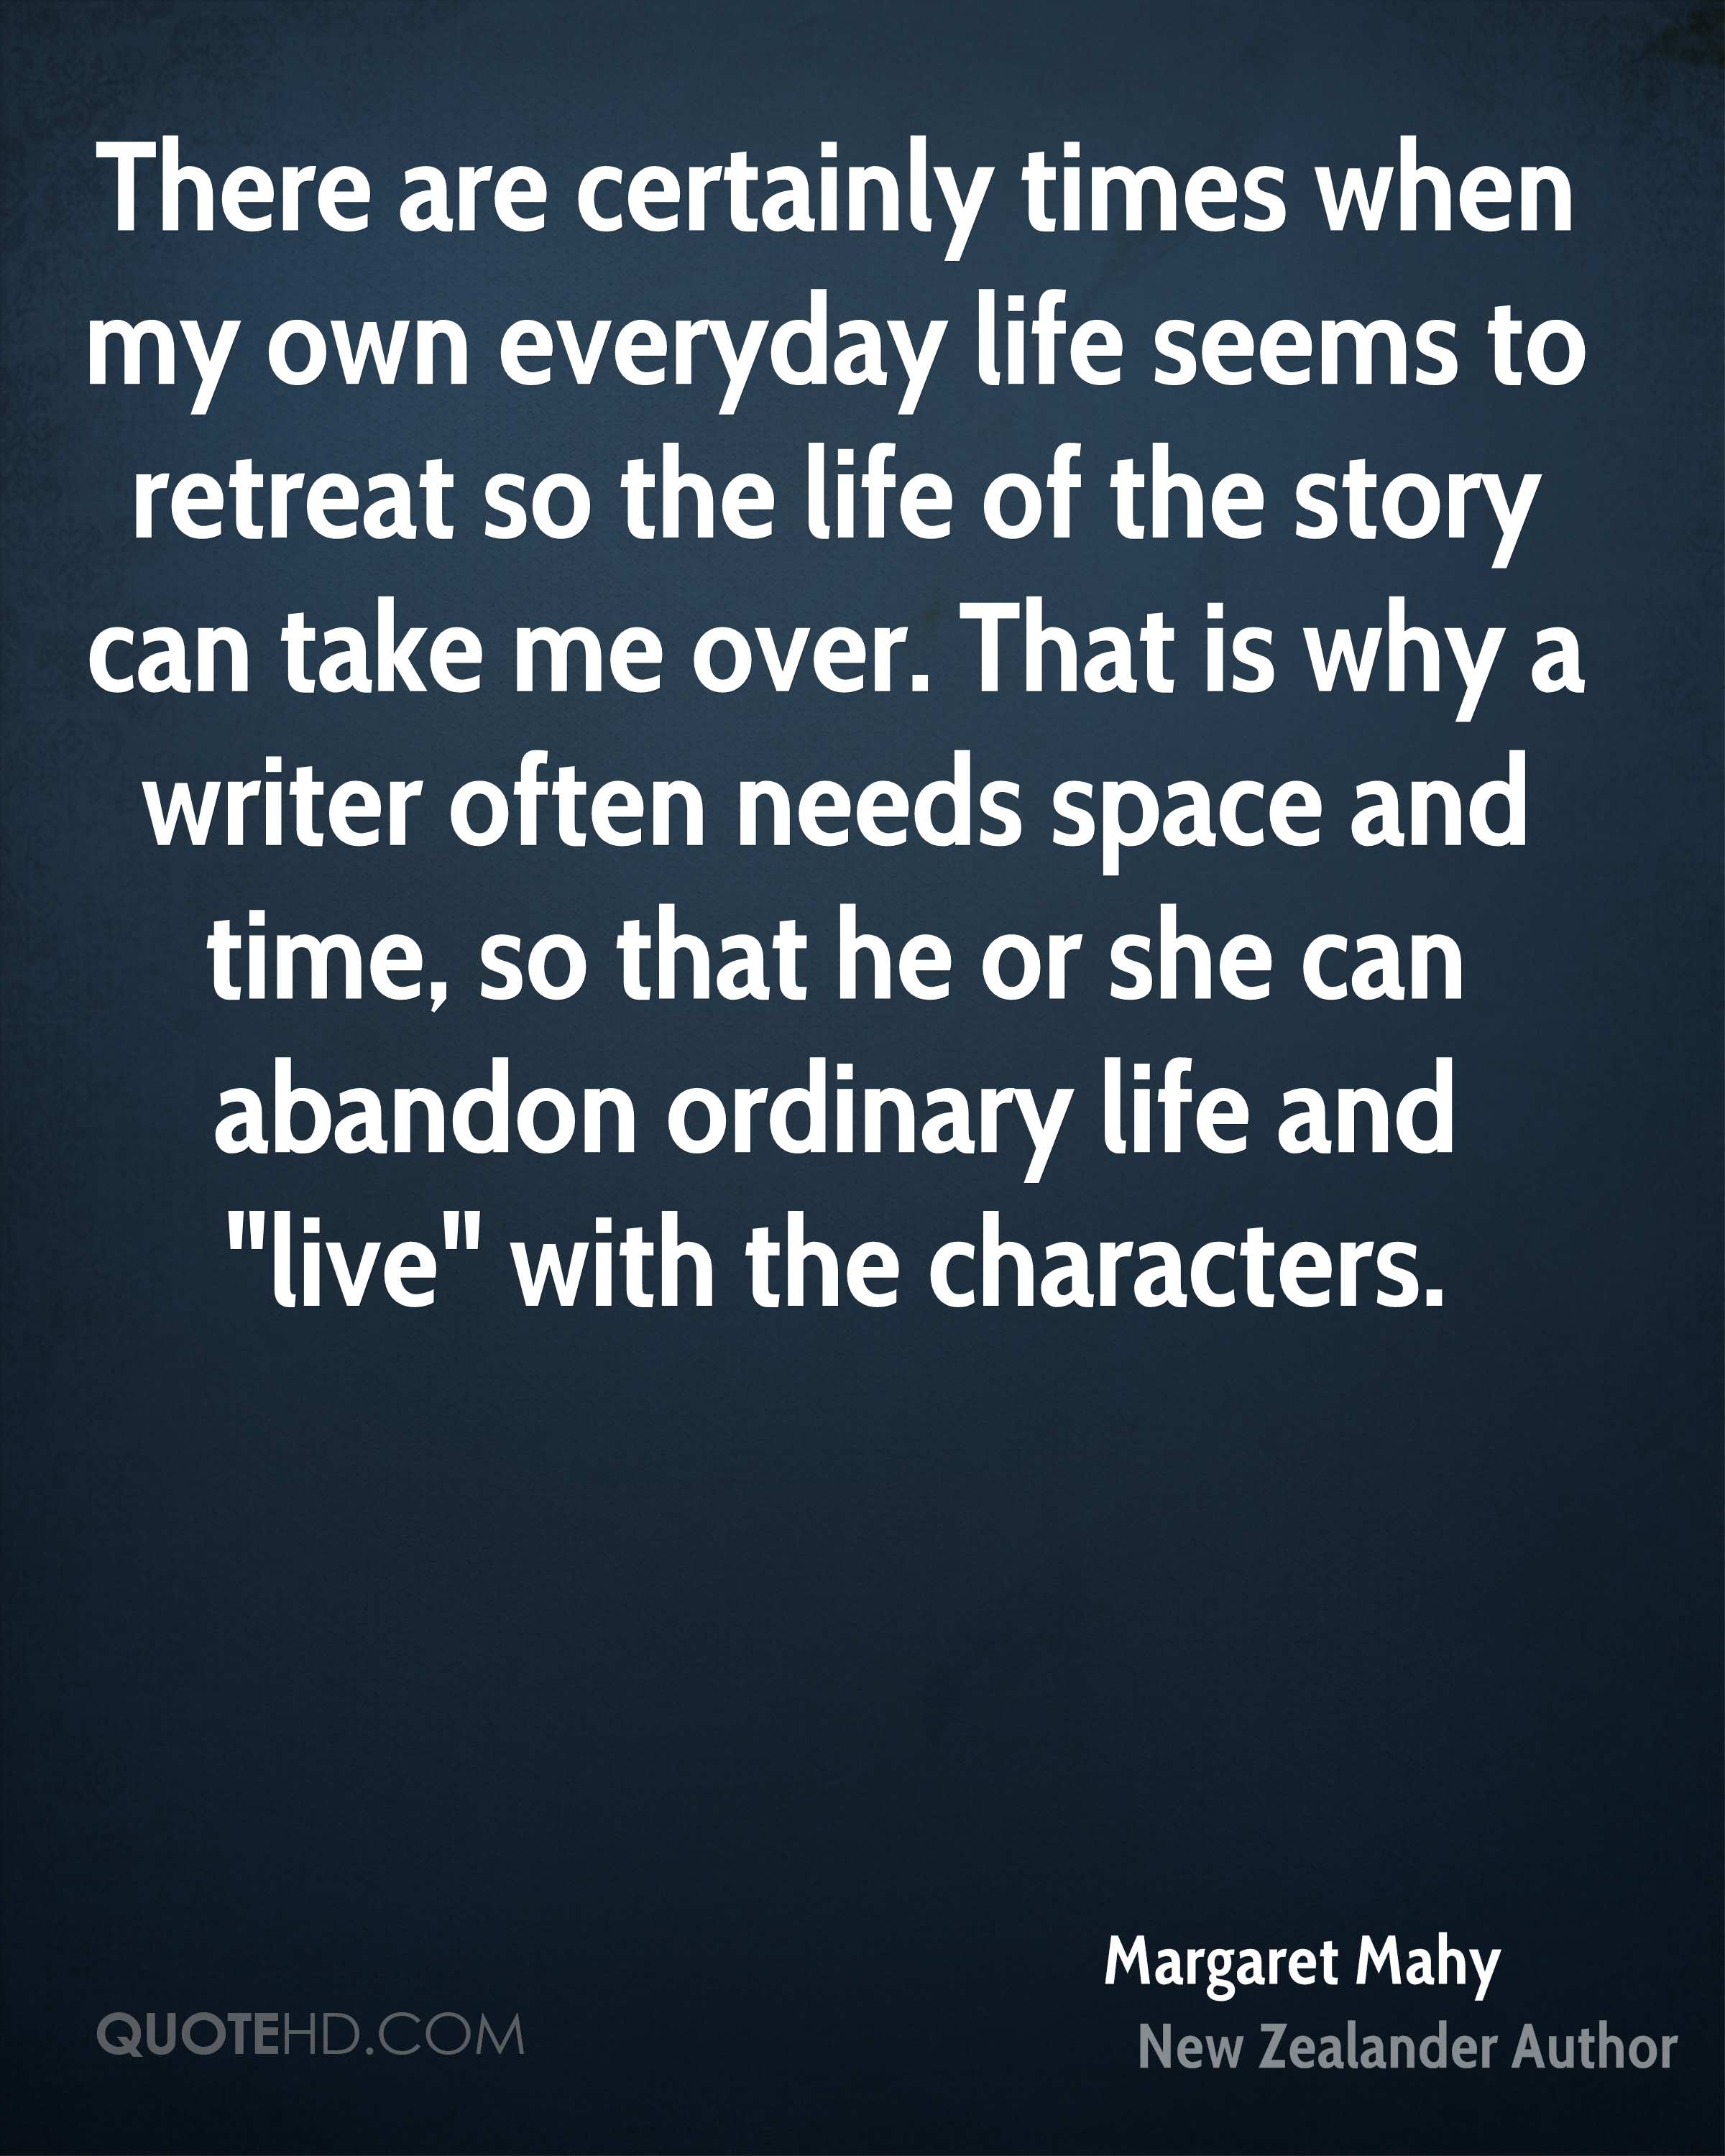 """There are certainly times when my own everyday life seems to retreat so the life of the story can take me over. That is why a writer often needs space and time, so that he or she can abandon ordinary life and """"live"""" with the characters."""